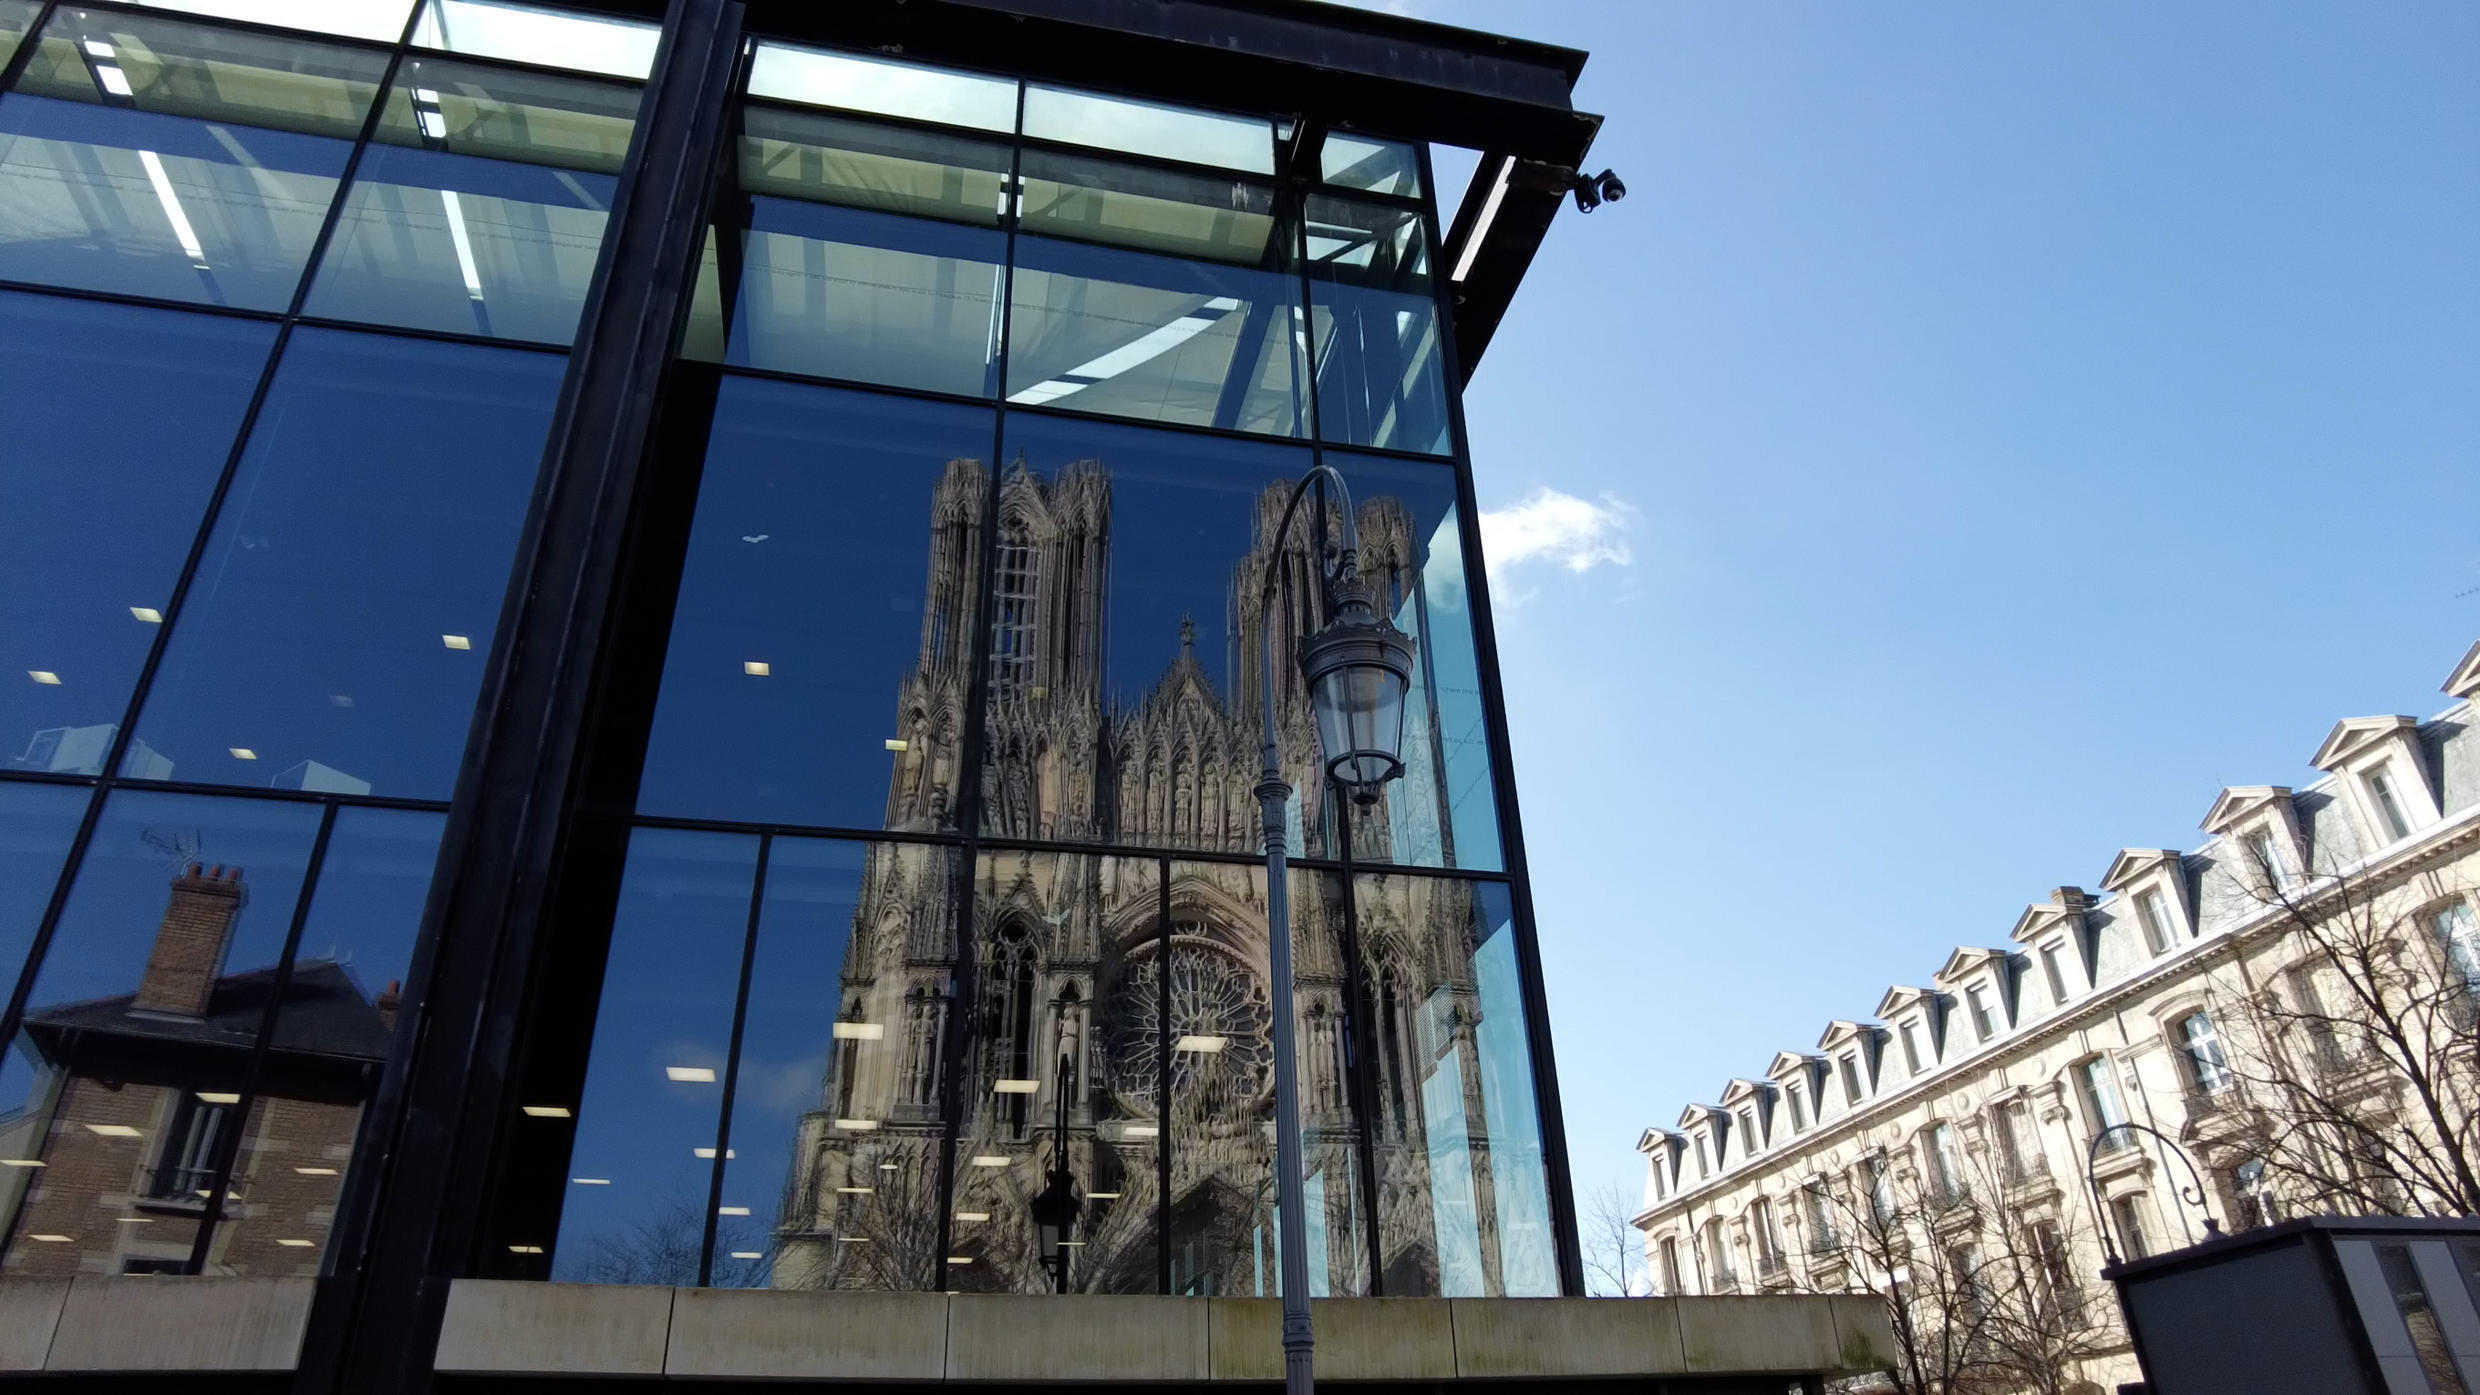 The city of Reims with its famous cathedral reflected on a building facade.